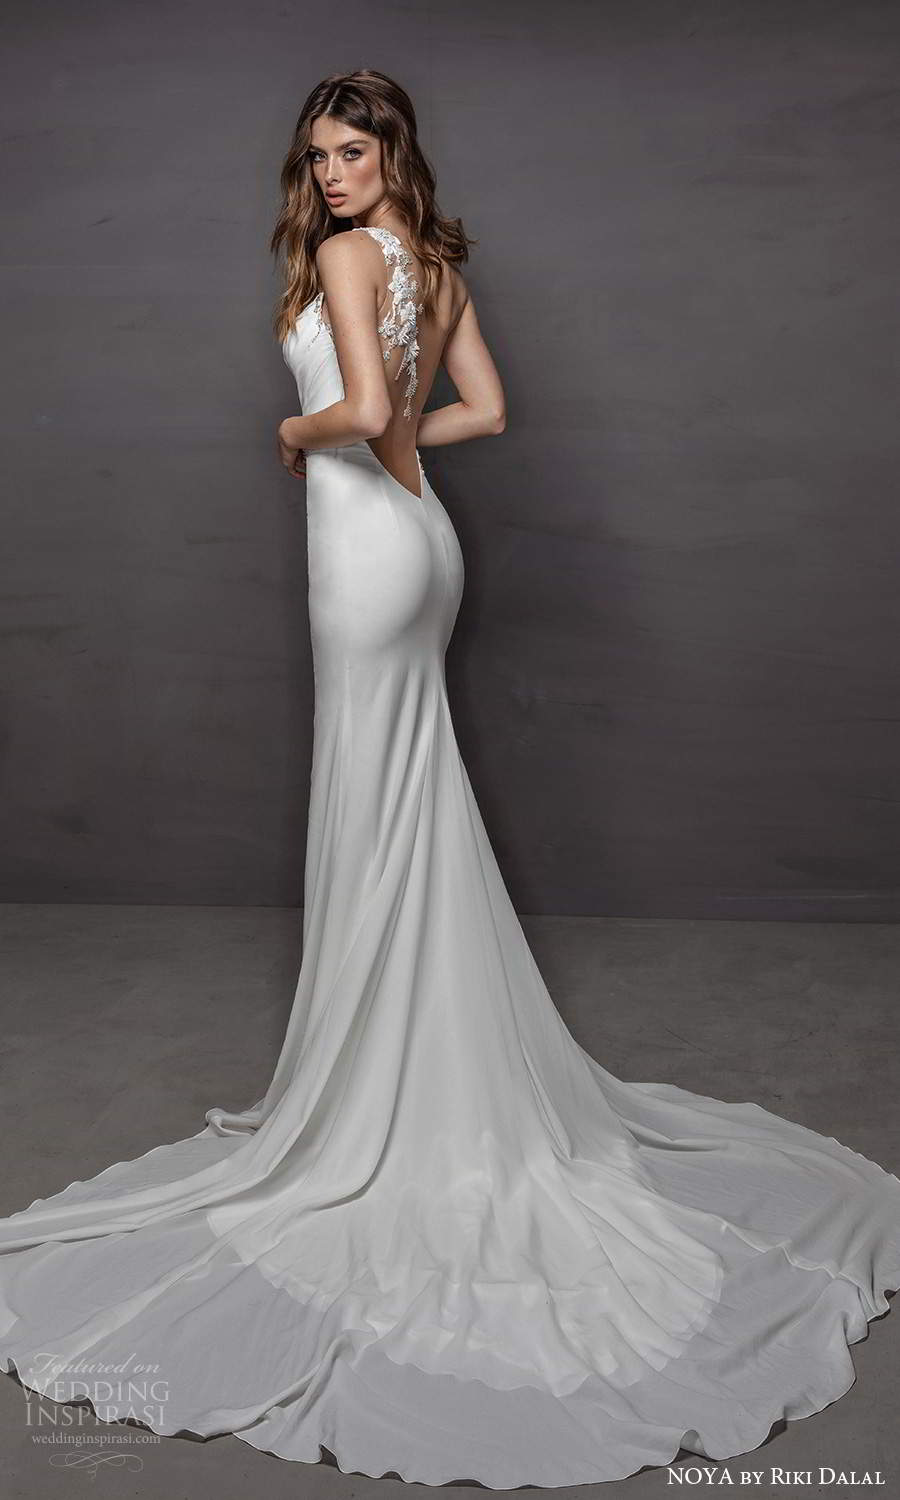 noya riki dalal 2021 bridal sleeveless one shoulder strap asymmetric neckline clean minimalist sheath wedding dress slit skirt chapel train (12) bv